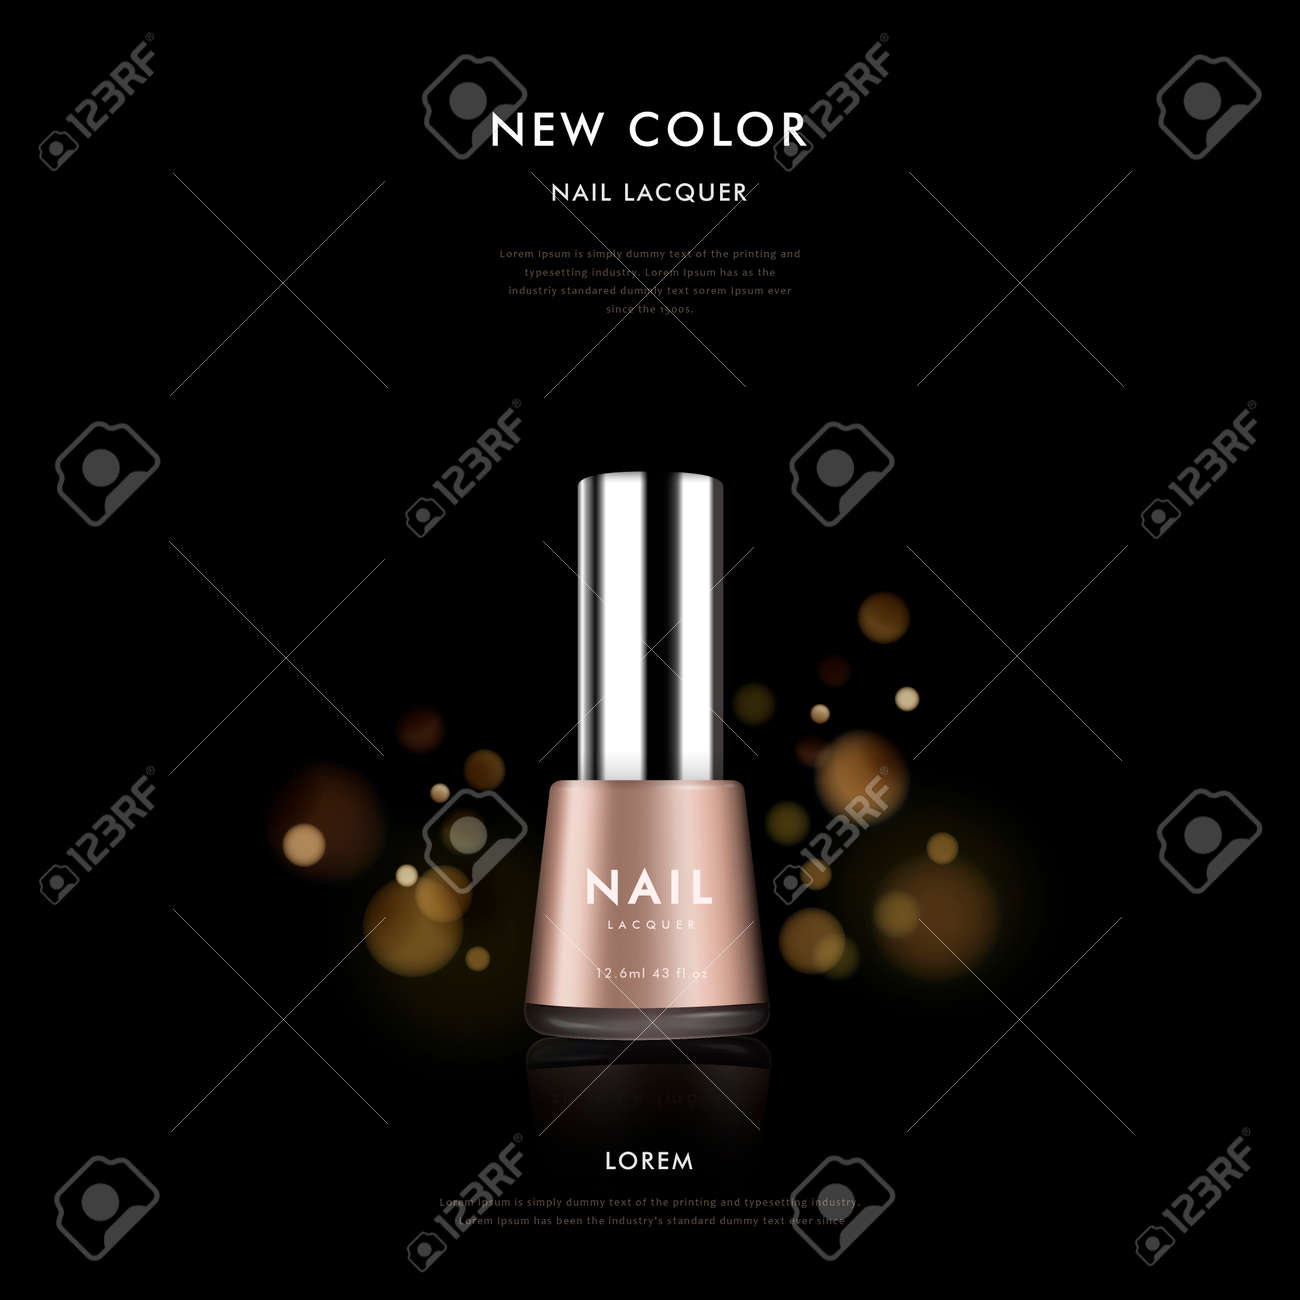 Elegant Nail Polish Ad Template, 3D Illustration Cosmetic Package ...